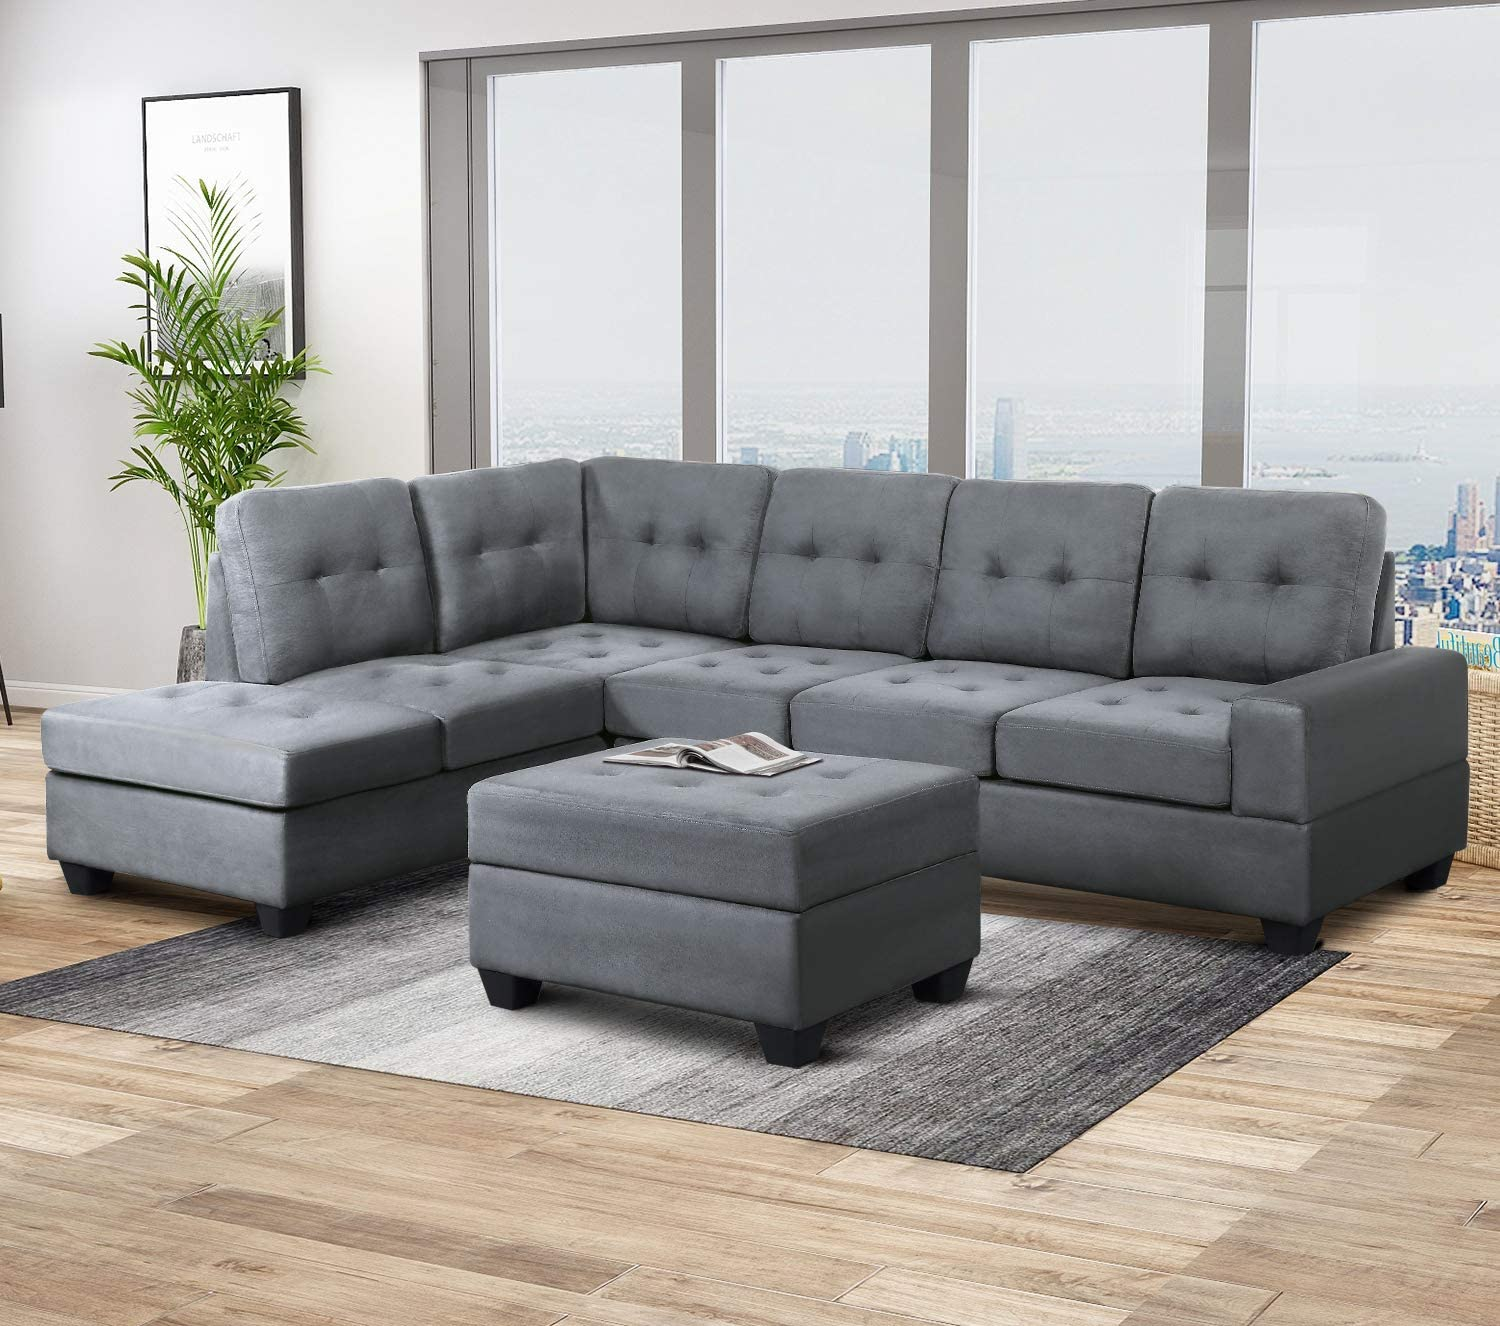 Harper /& Bright Designs Sectional Sofas for Living Room 3-Piece Sofa Leather Couch with Chaise Lounge and Ottoman Brown